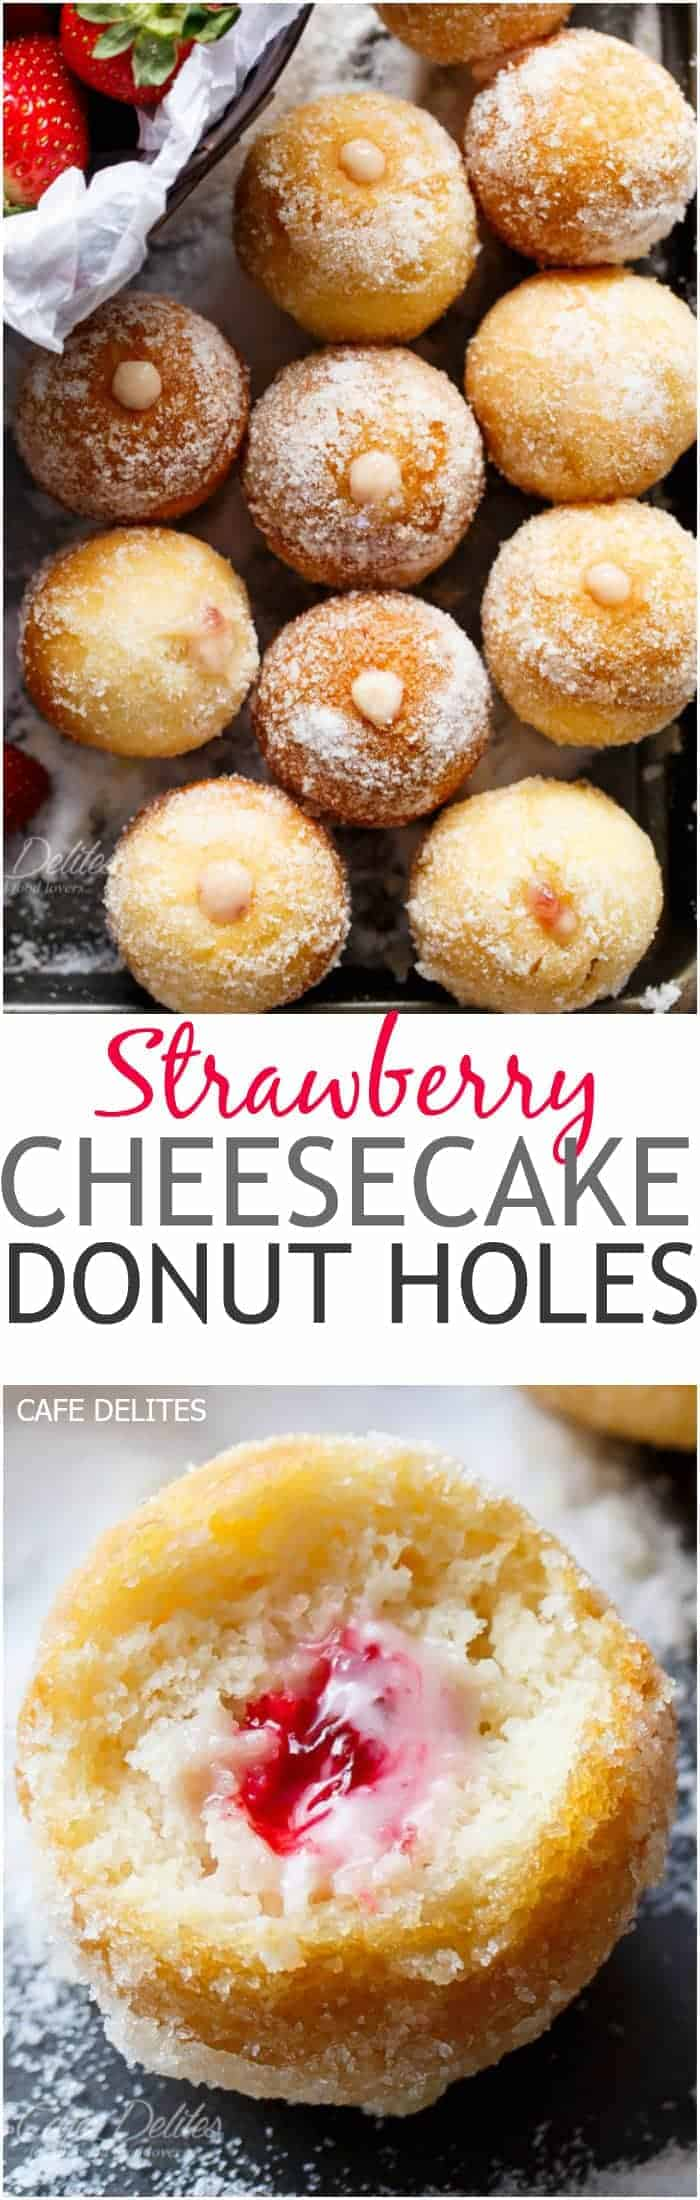 Lightened up soft and fluffy Strawberry Cheesecake Donut Holes, filled with sweet strawberry and creamy cheesecake filling! Enjoy with no guilt!   https://cafedelites.com